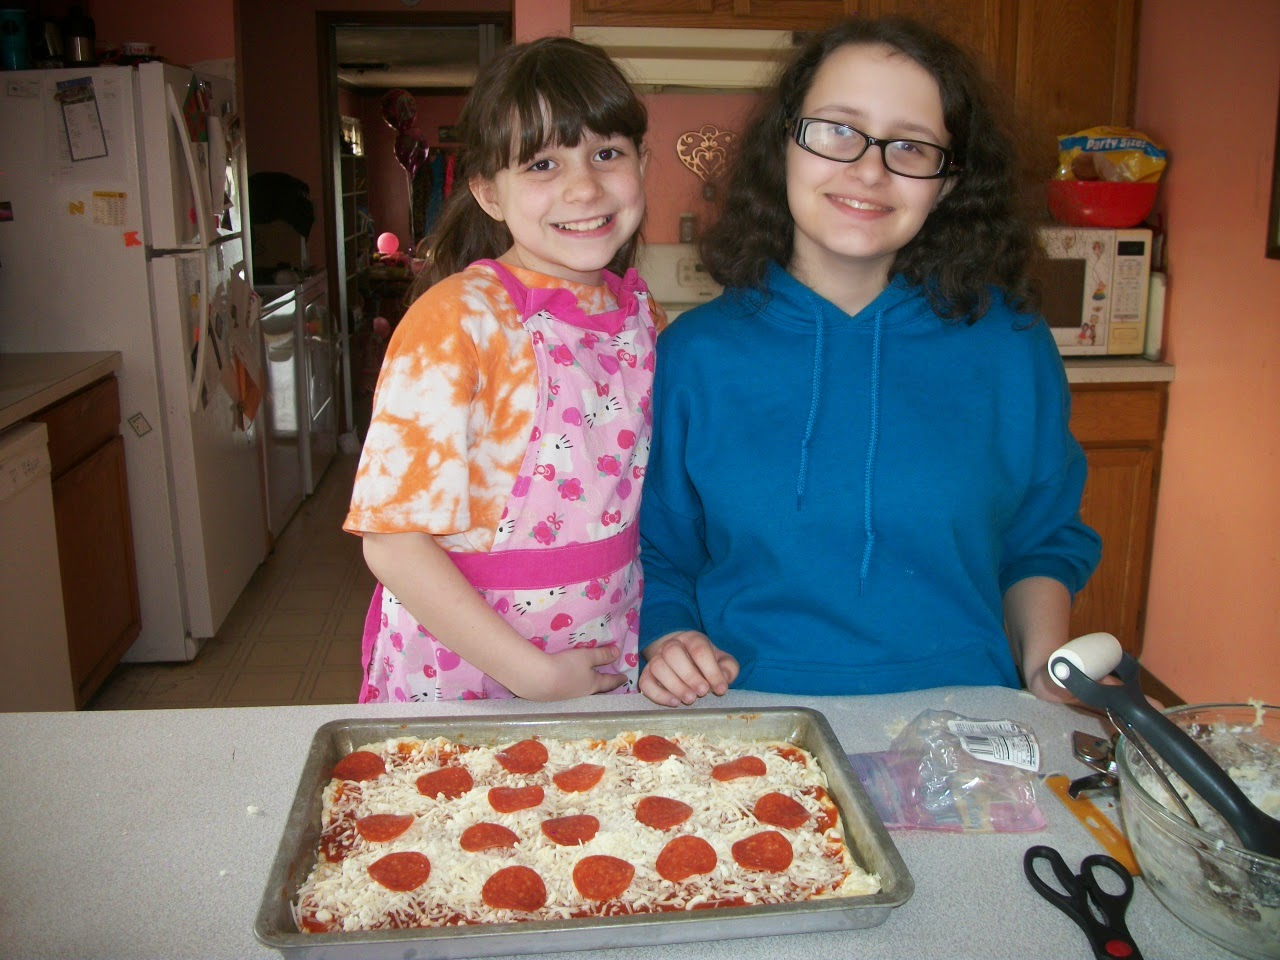 http://collettaskitchensink.blogspot.com/2015/04/family-time-pizza-making-42115.html